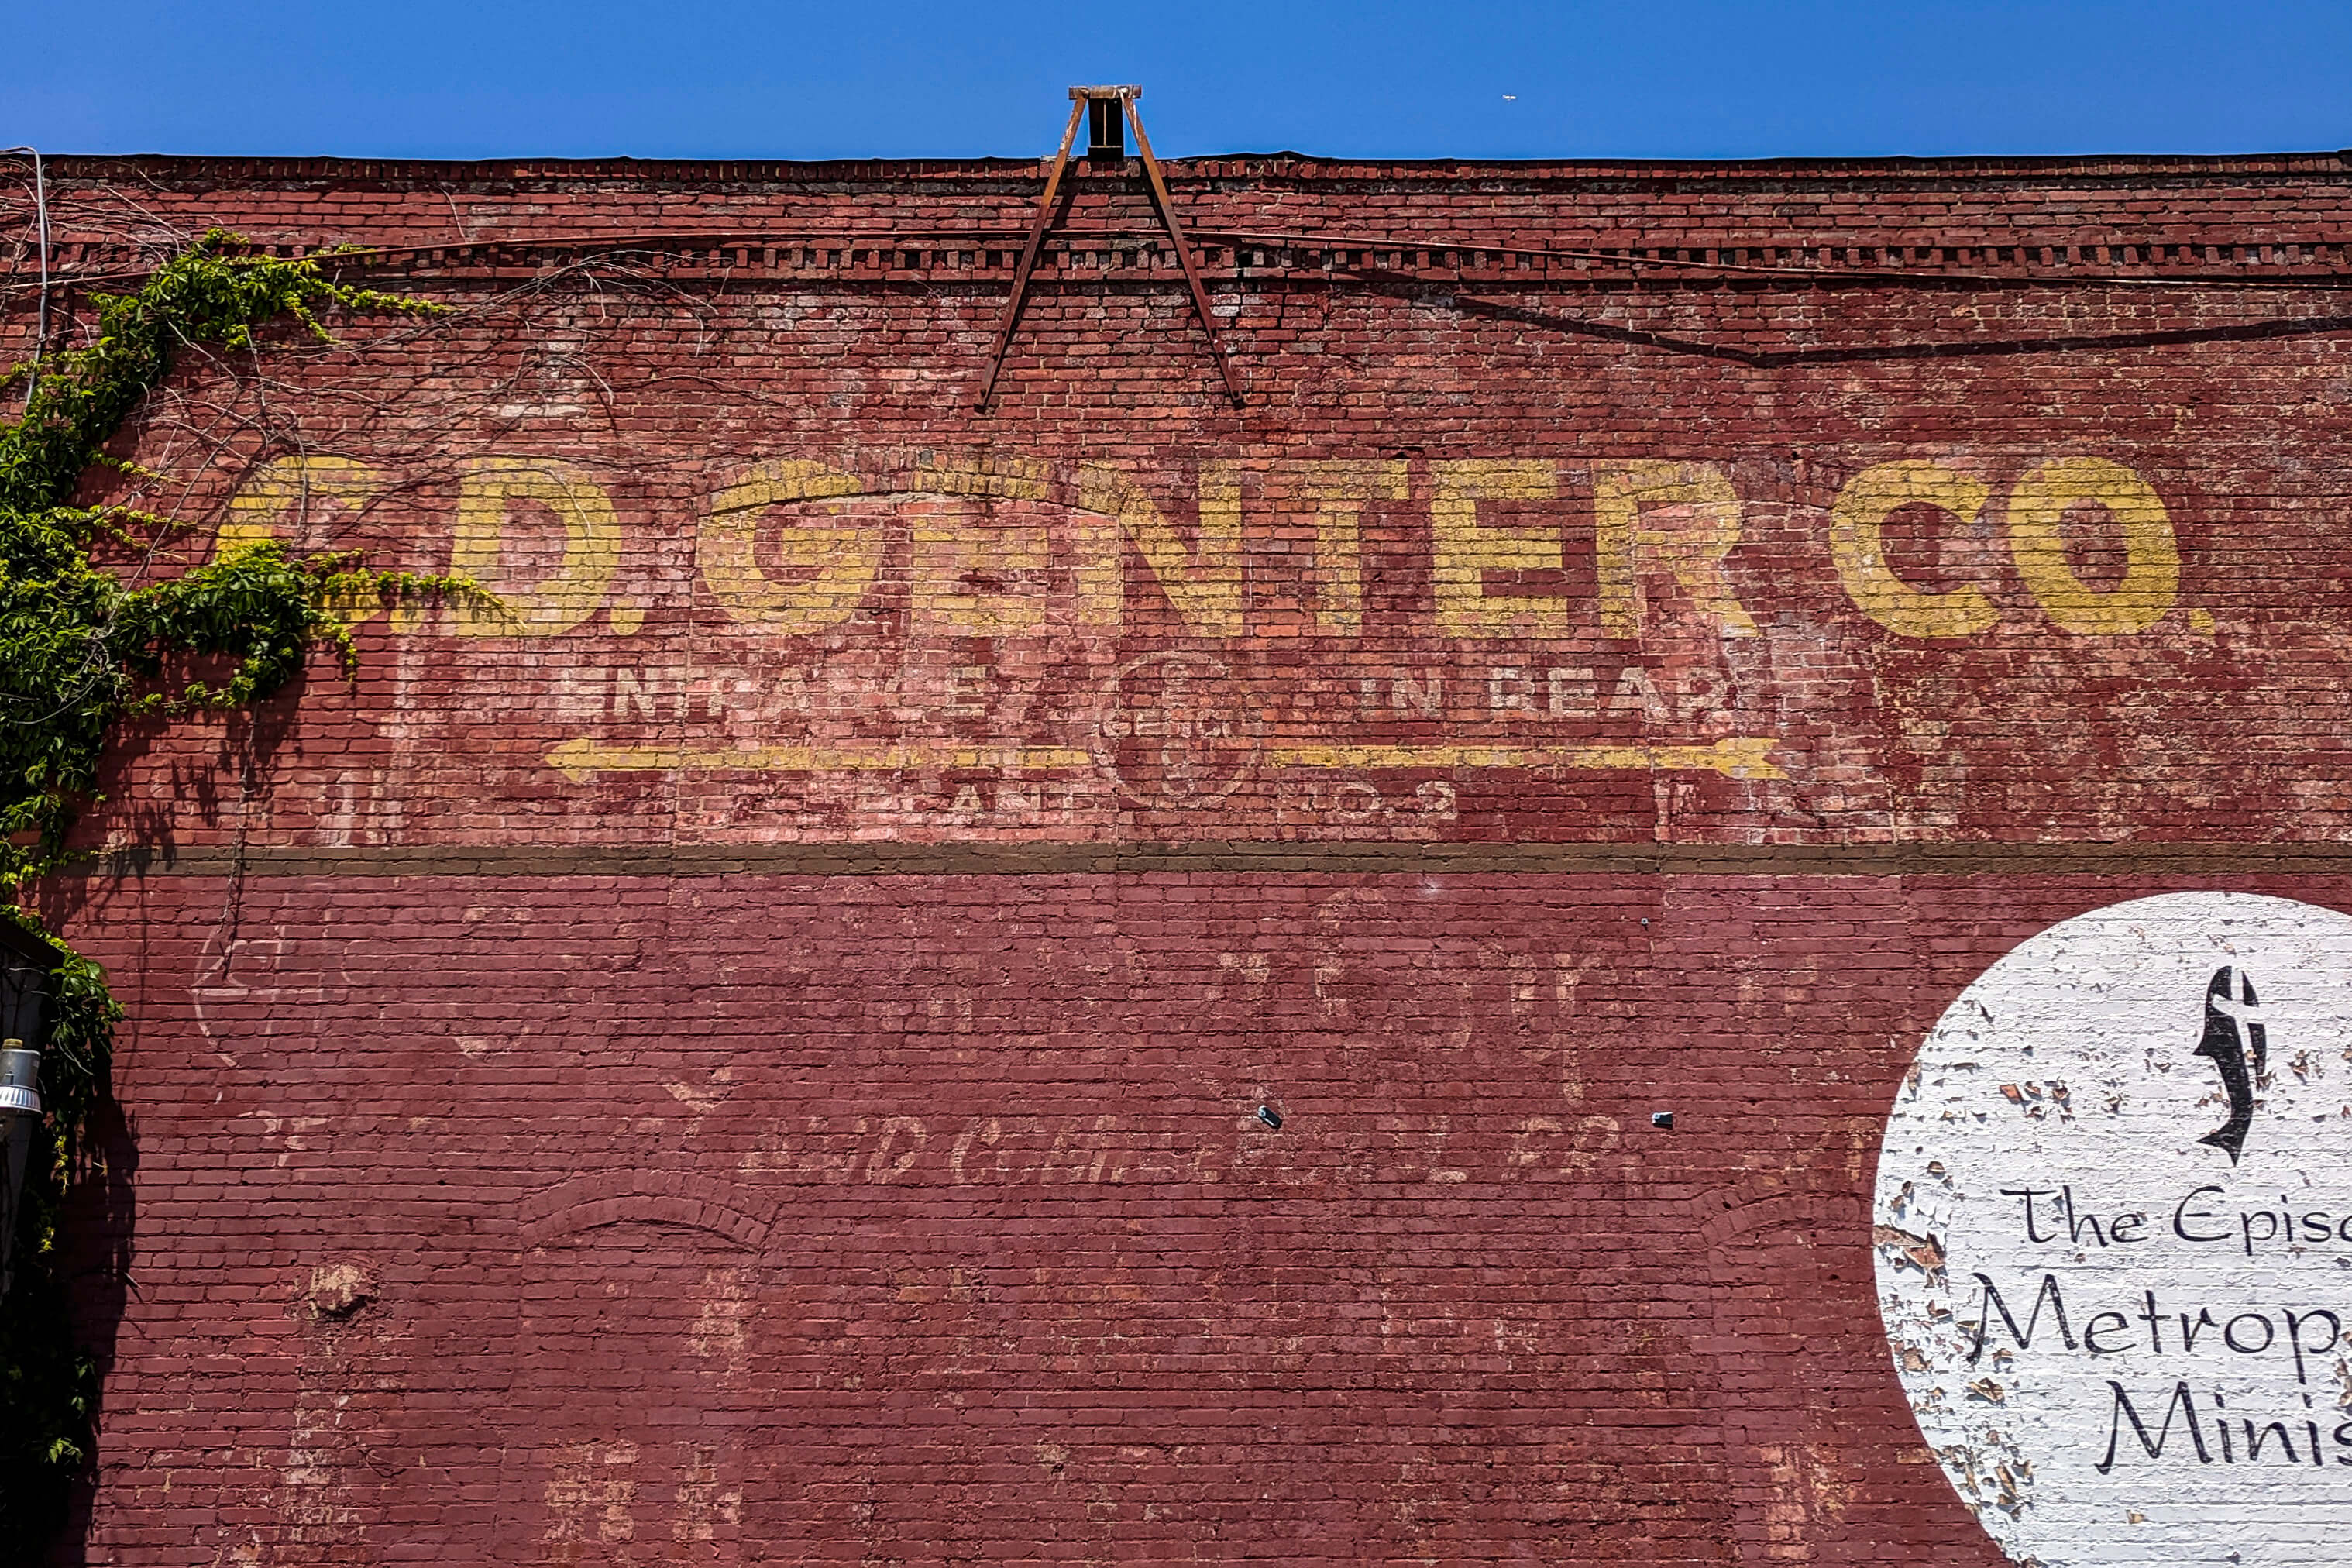 A very weathered C.D. Genter Co. logo painted onto a brick building